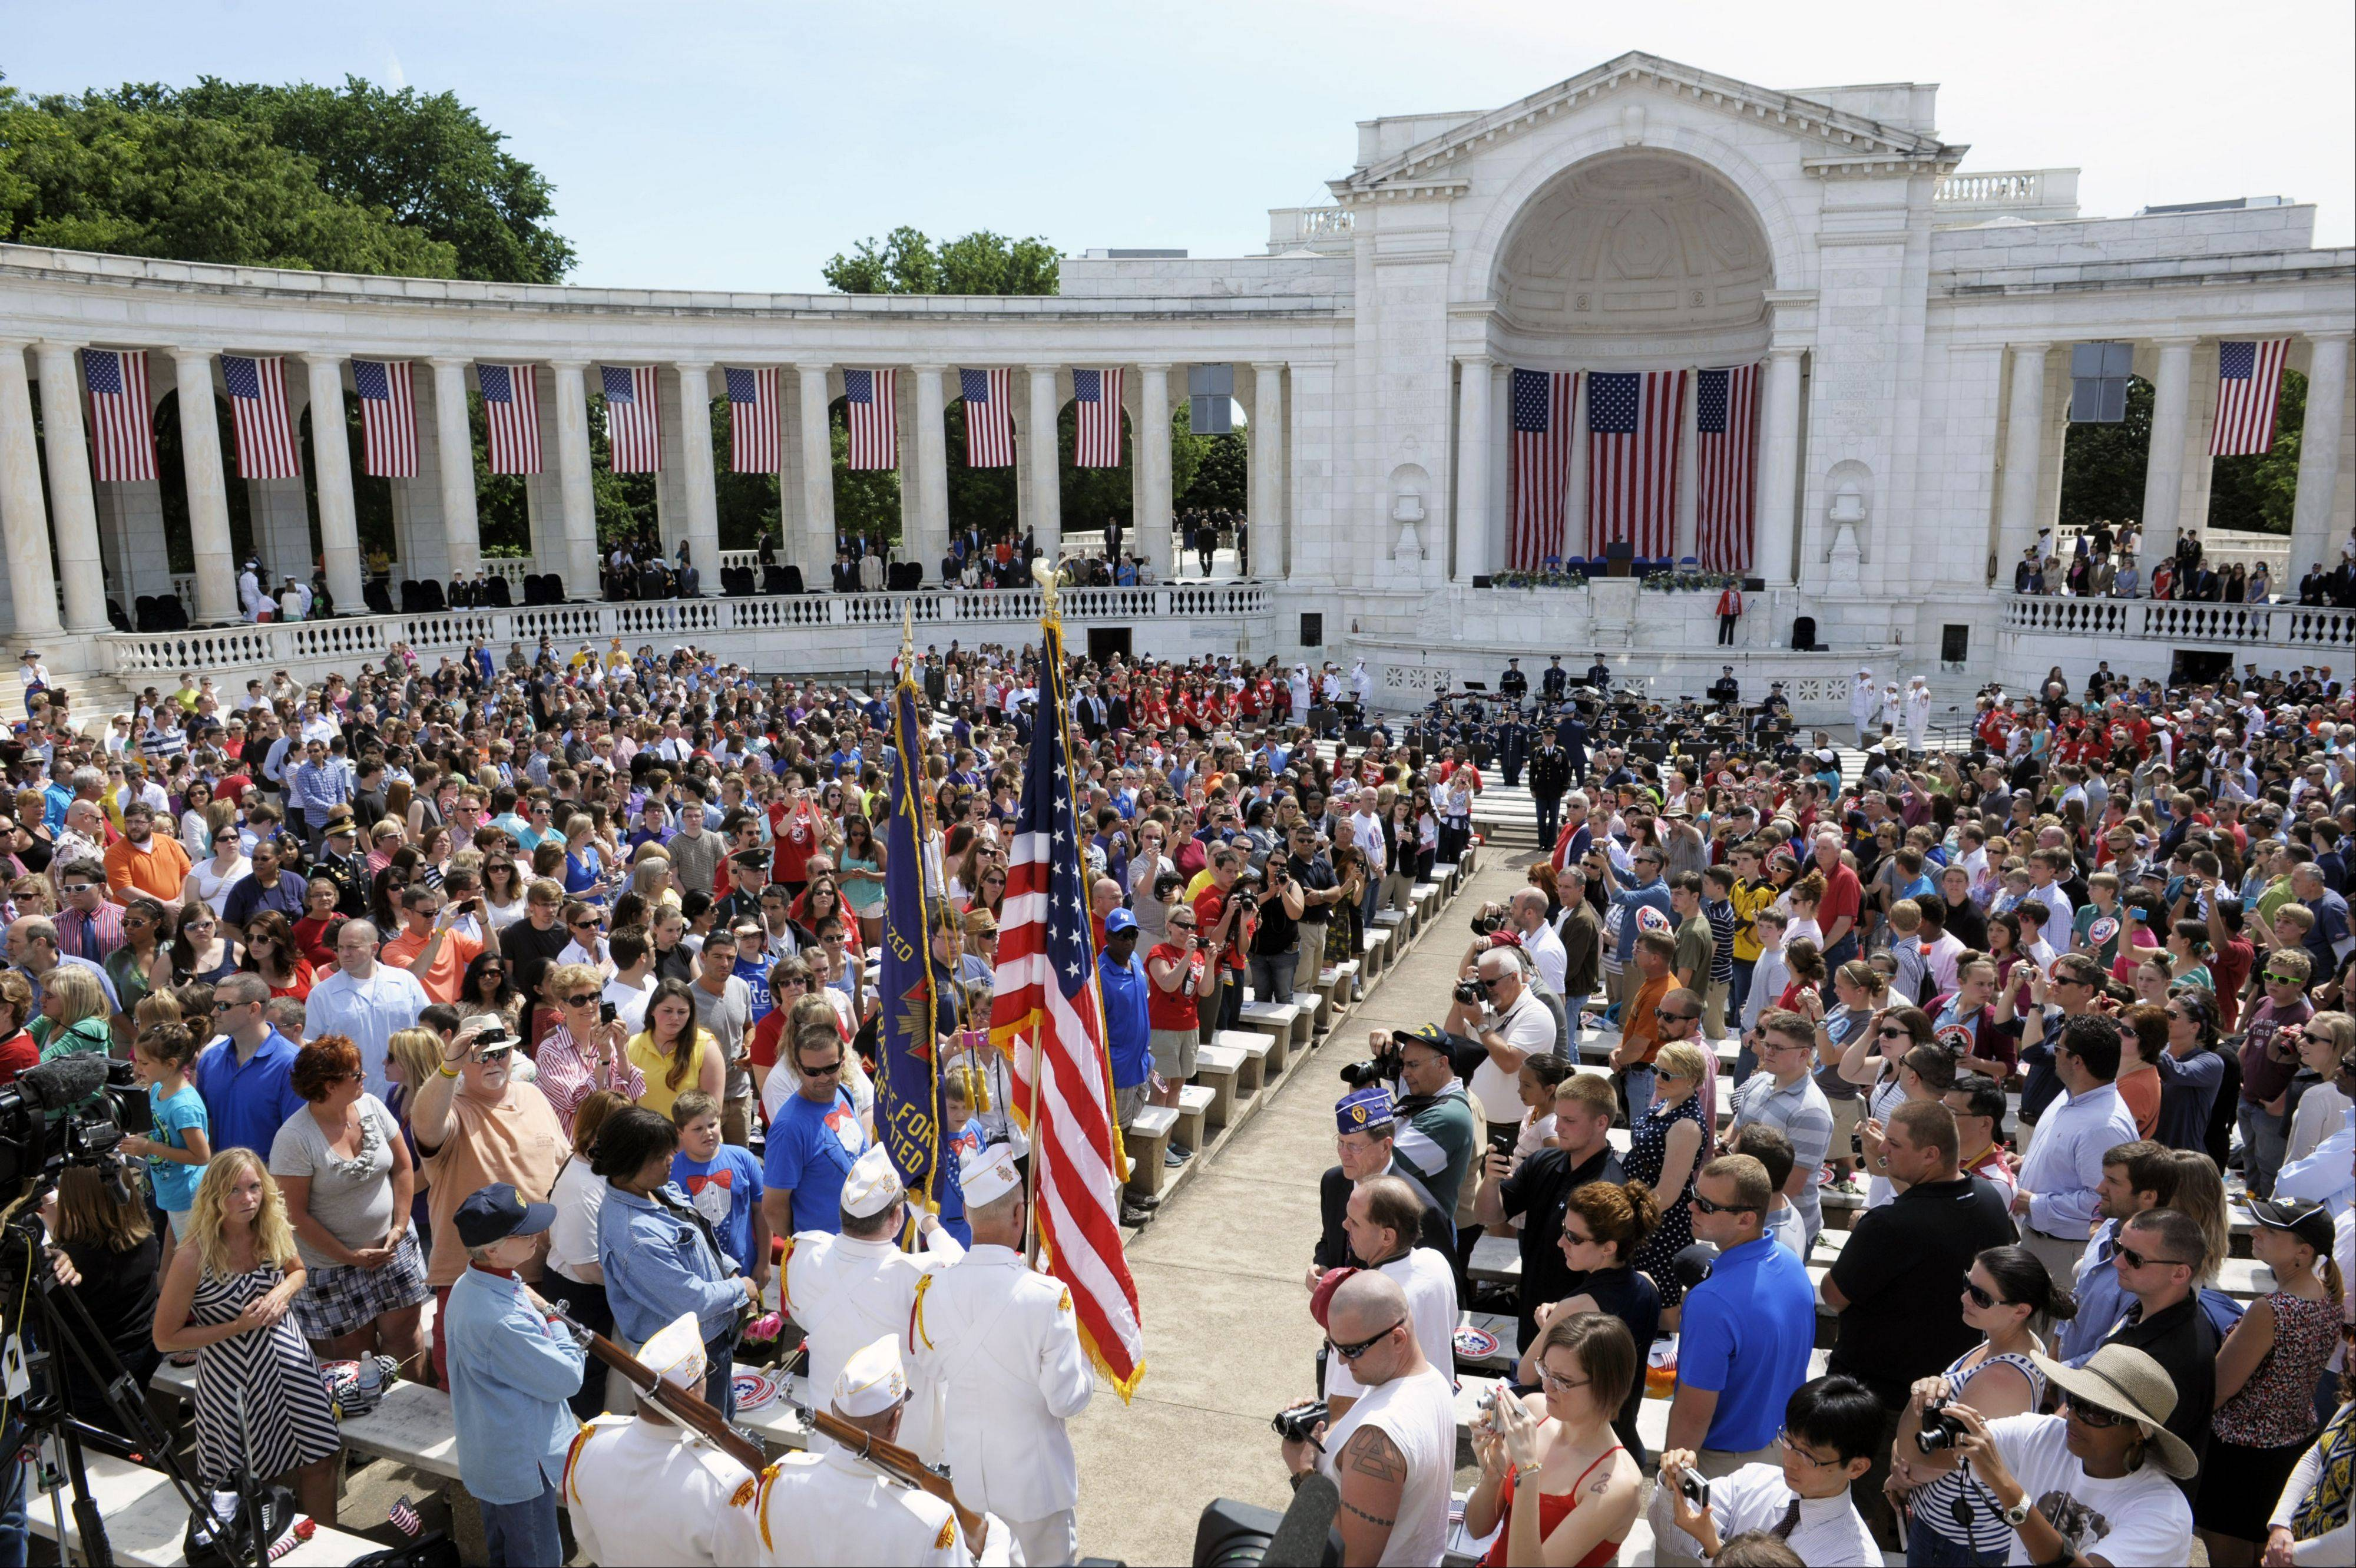 An honor guard presents the colors ahead of President Barack Obama delivering his Memorial Day address at Arlington National Cemetery in Arlington, Va., Monday, May 27, 2013.